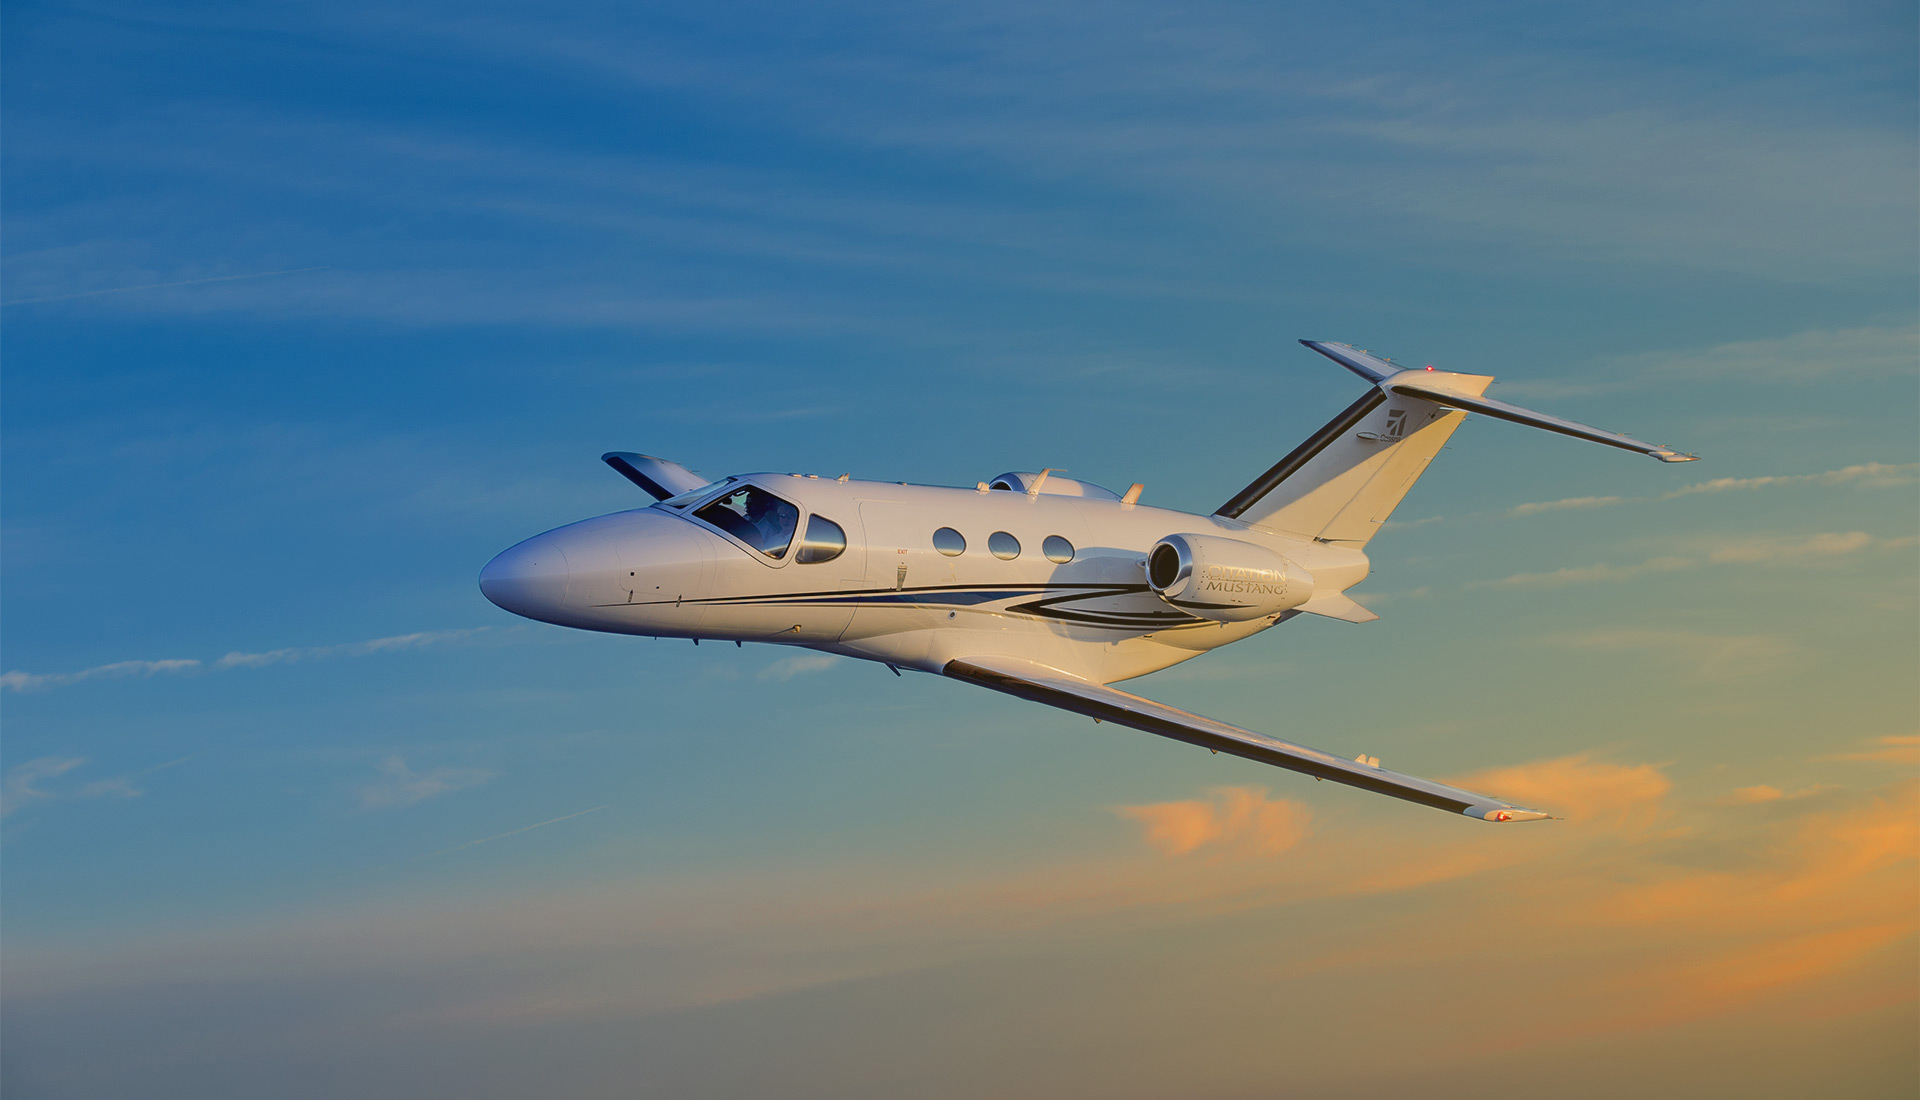 Cessna Citation Mustang in flight